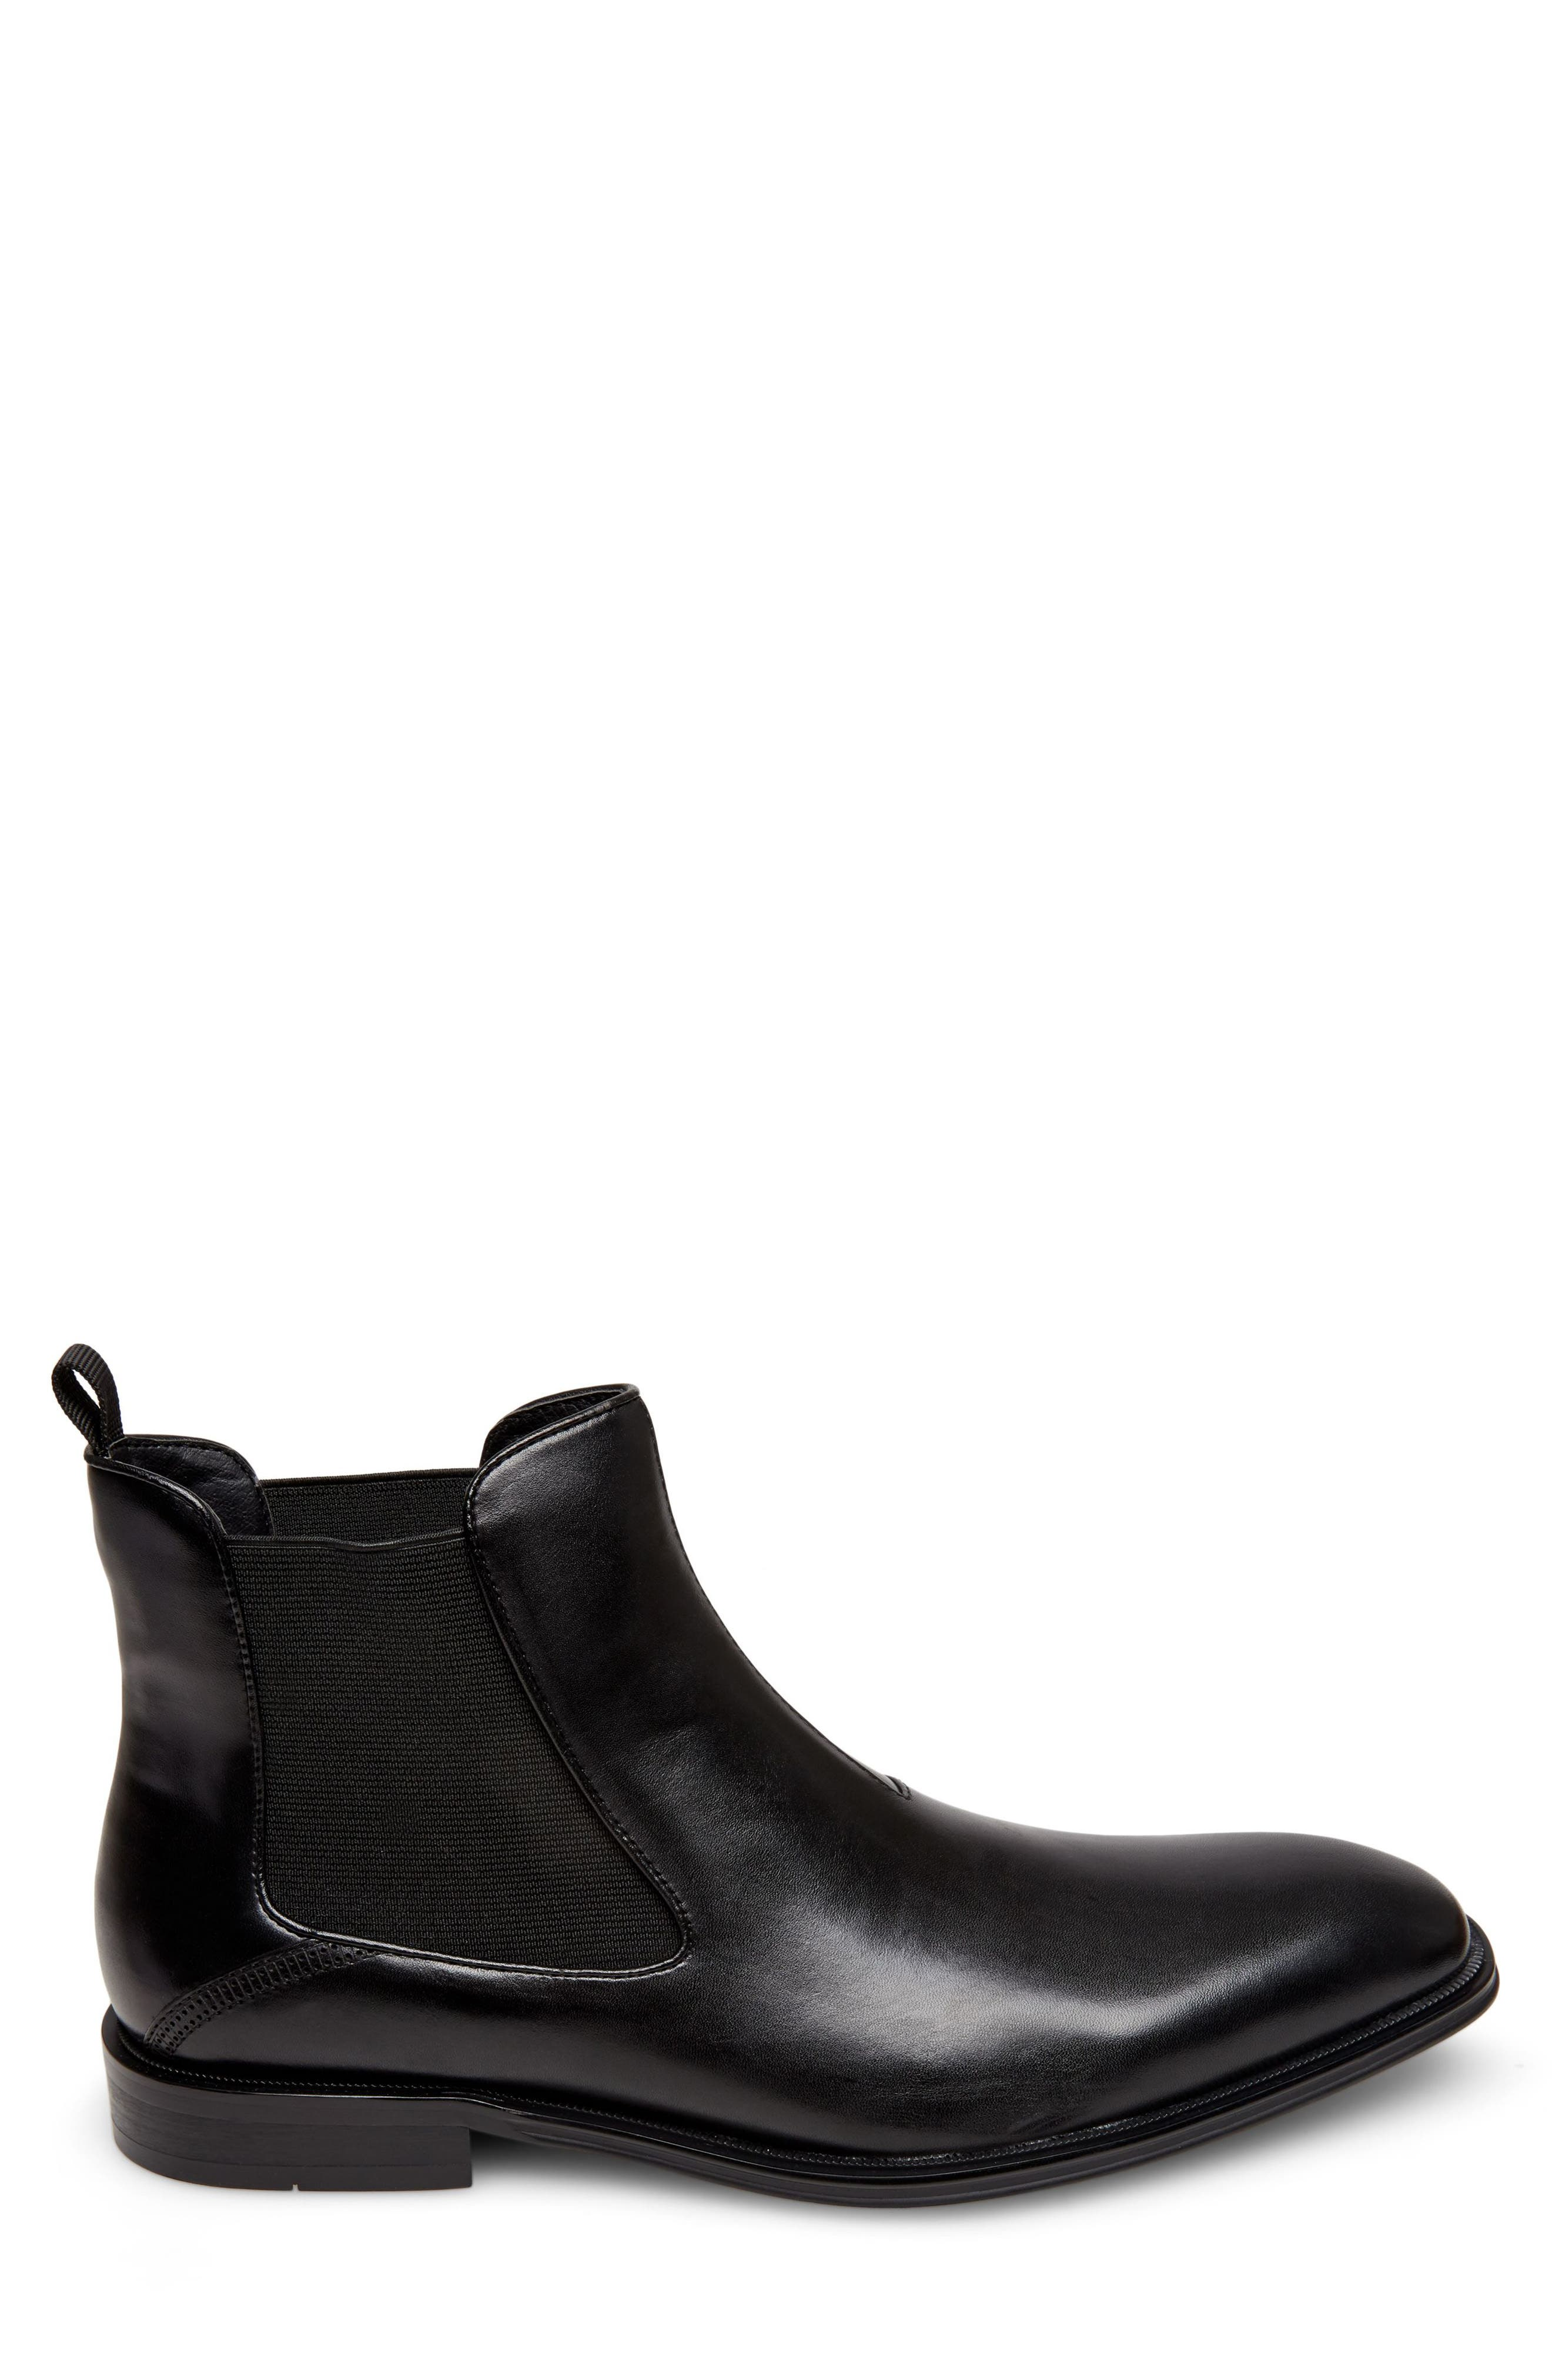 Malice Chelsea Boot,                             Alternate thumbnail 3, color,                             BLACK LEATHER